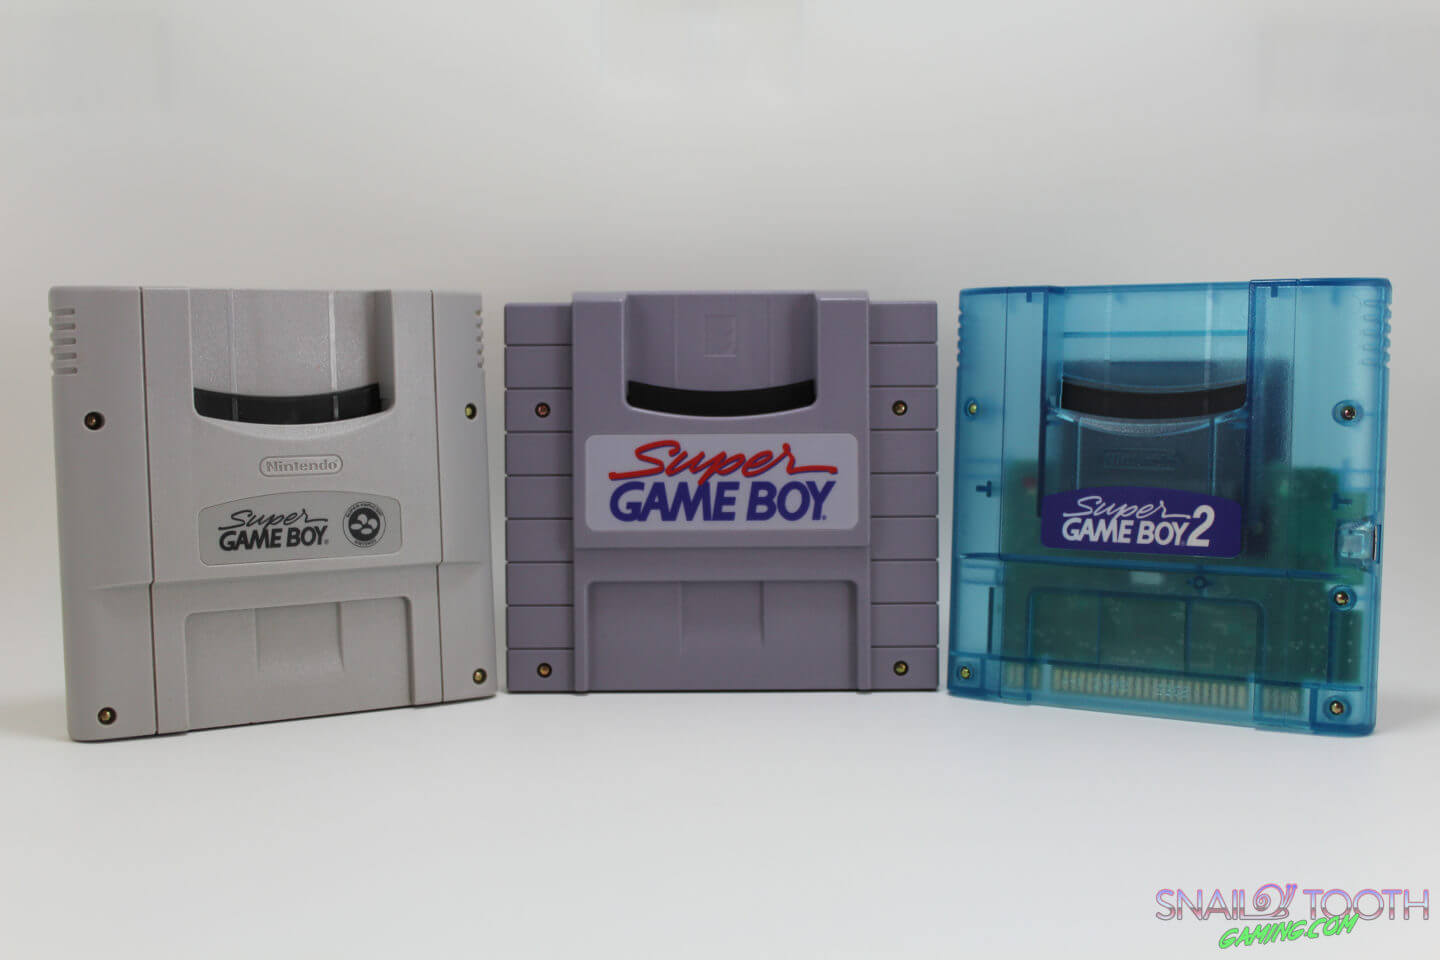 The Different Iterations of the Super Game Boy | Snail Tooth Gaming